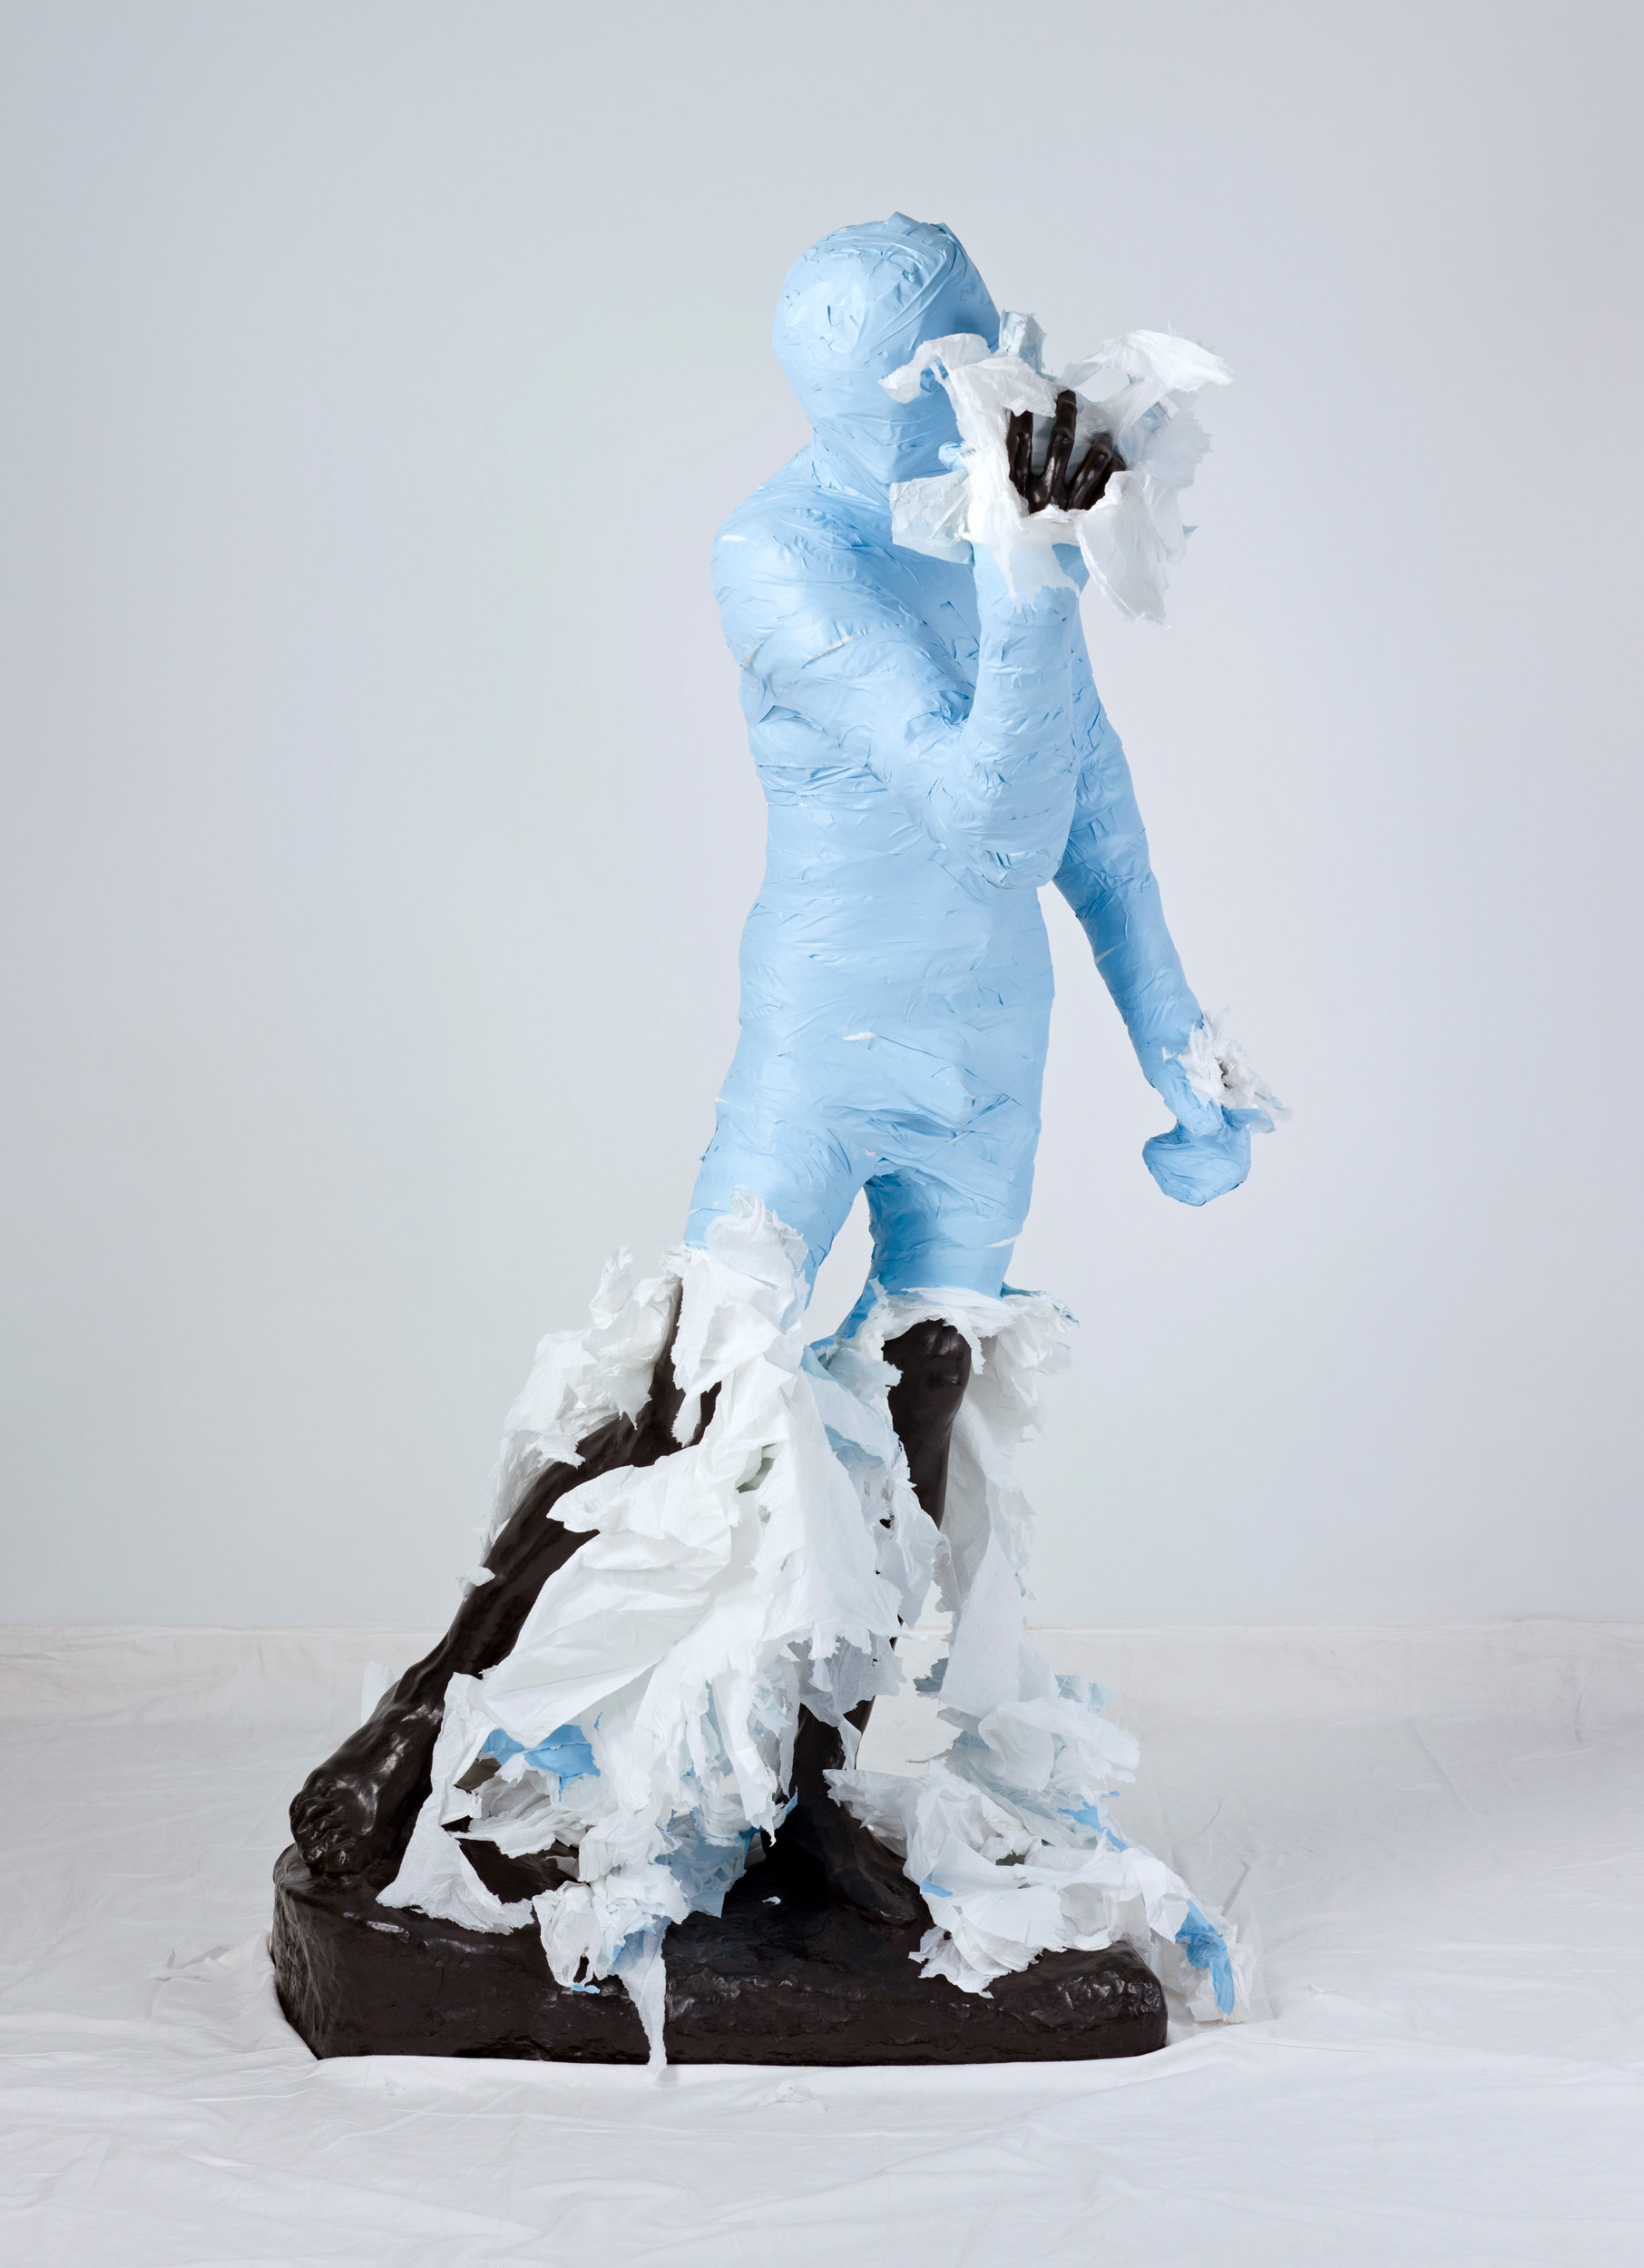 Unwrapping Rodin (Blue) 4   2010, colour photograph 175 x 127 cm / 69 x 50 in. Edition of 2